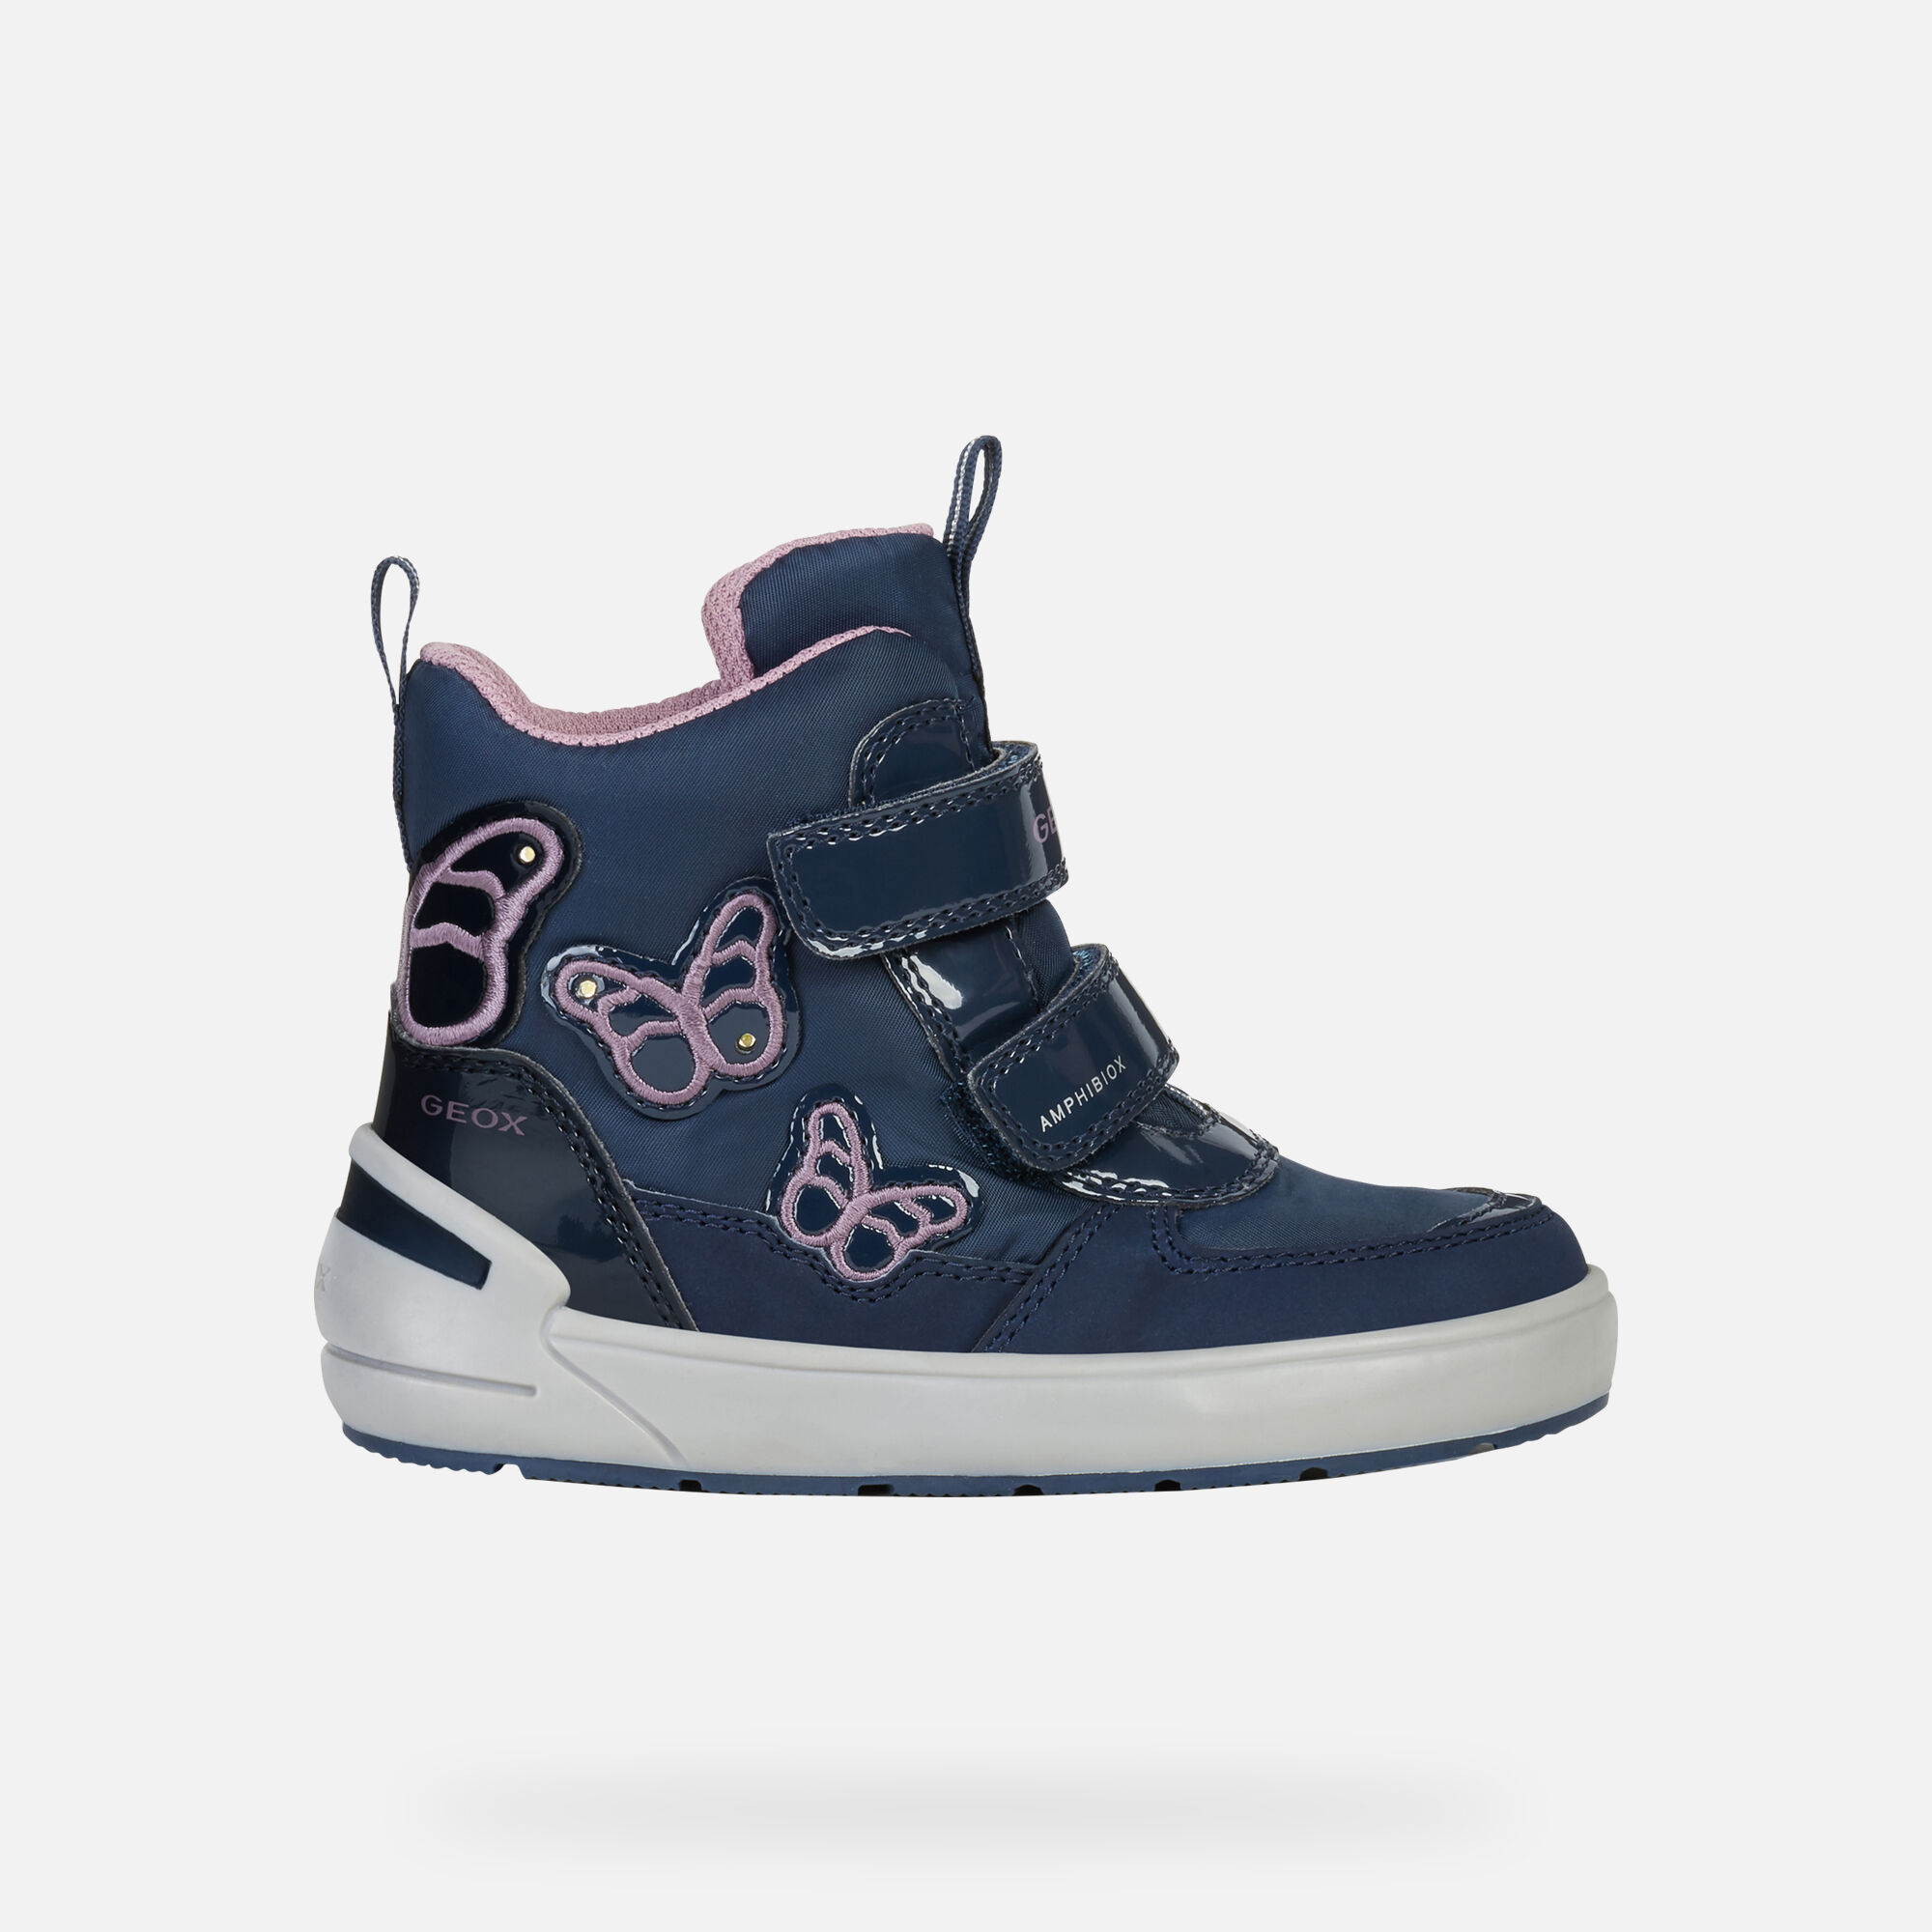 14 Best geox shoes images | Shoes, Children images, Fashion